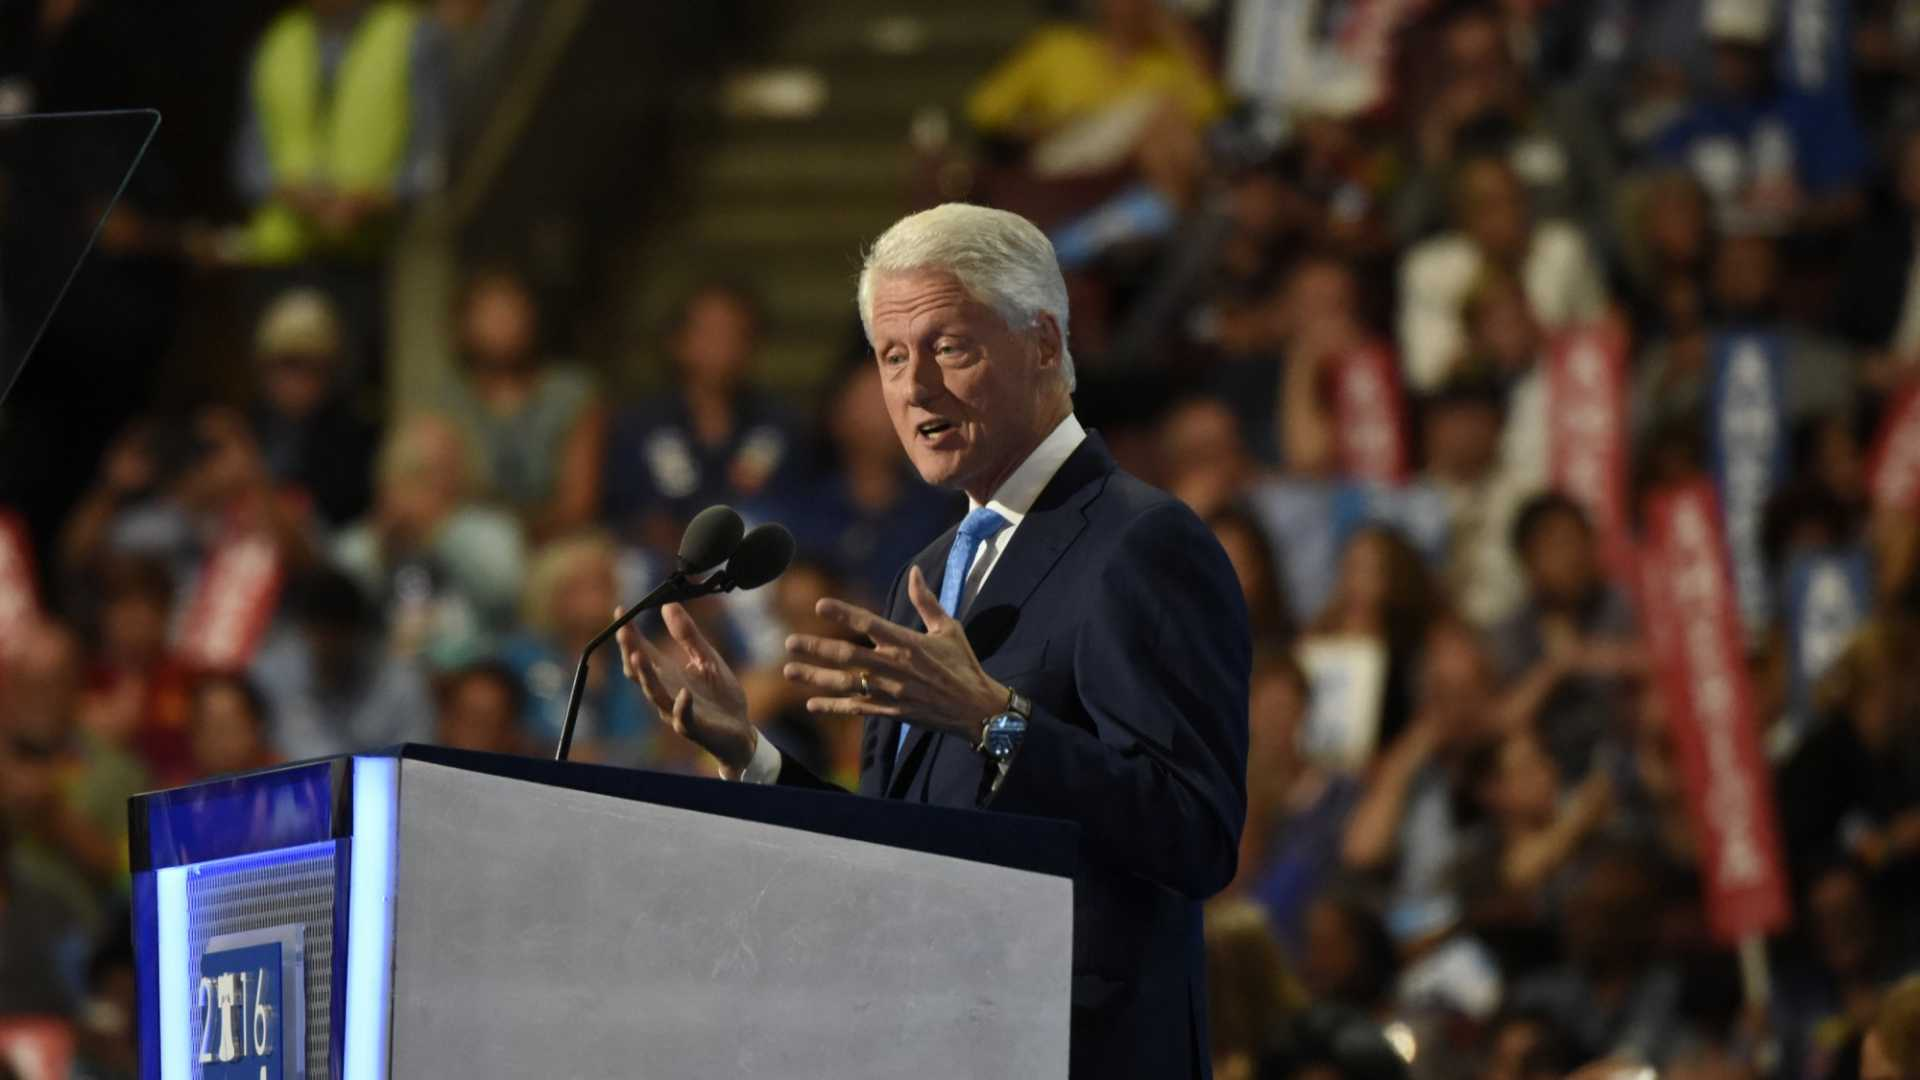 Bill Clinton's Speech About Hillary Last Night Is Exactly What Leaders Need To Do